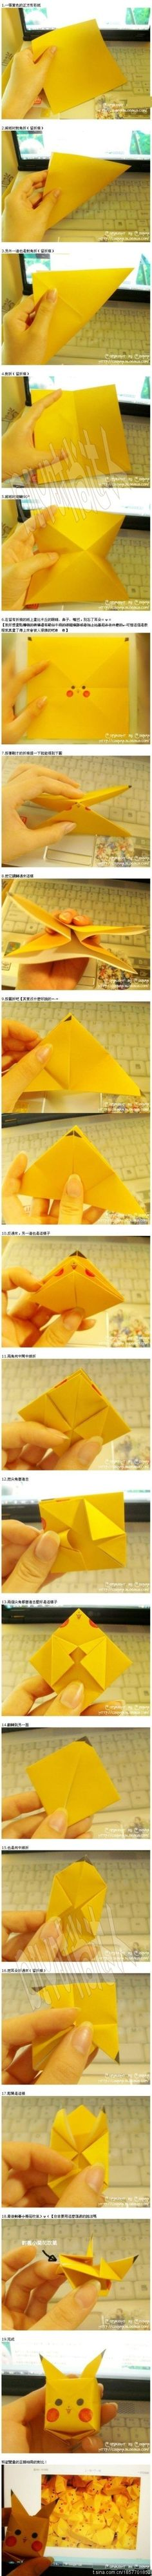 Origami 34 Best Images On Pinterest Crafts Instructions Star Wars Diagrams And Crease Patterns Starwarigami Pikachu Tutorial Pokemon Craft Dolls Art Kirigami